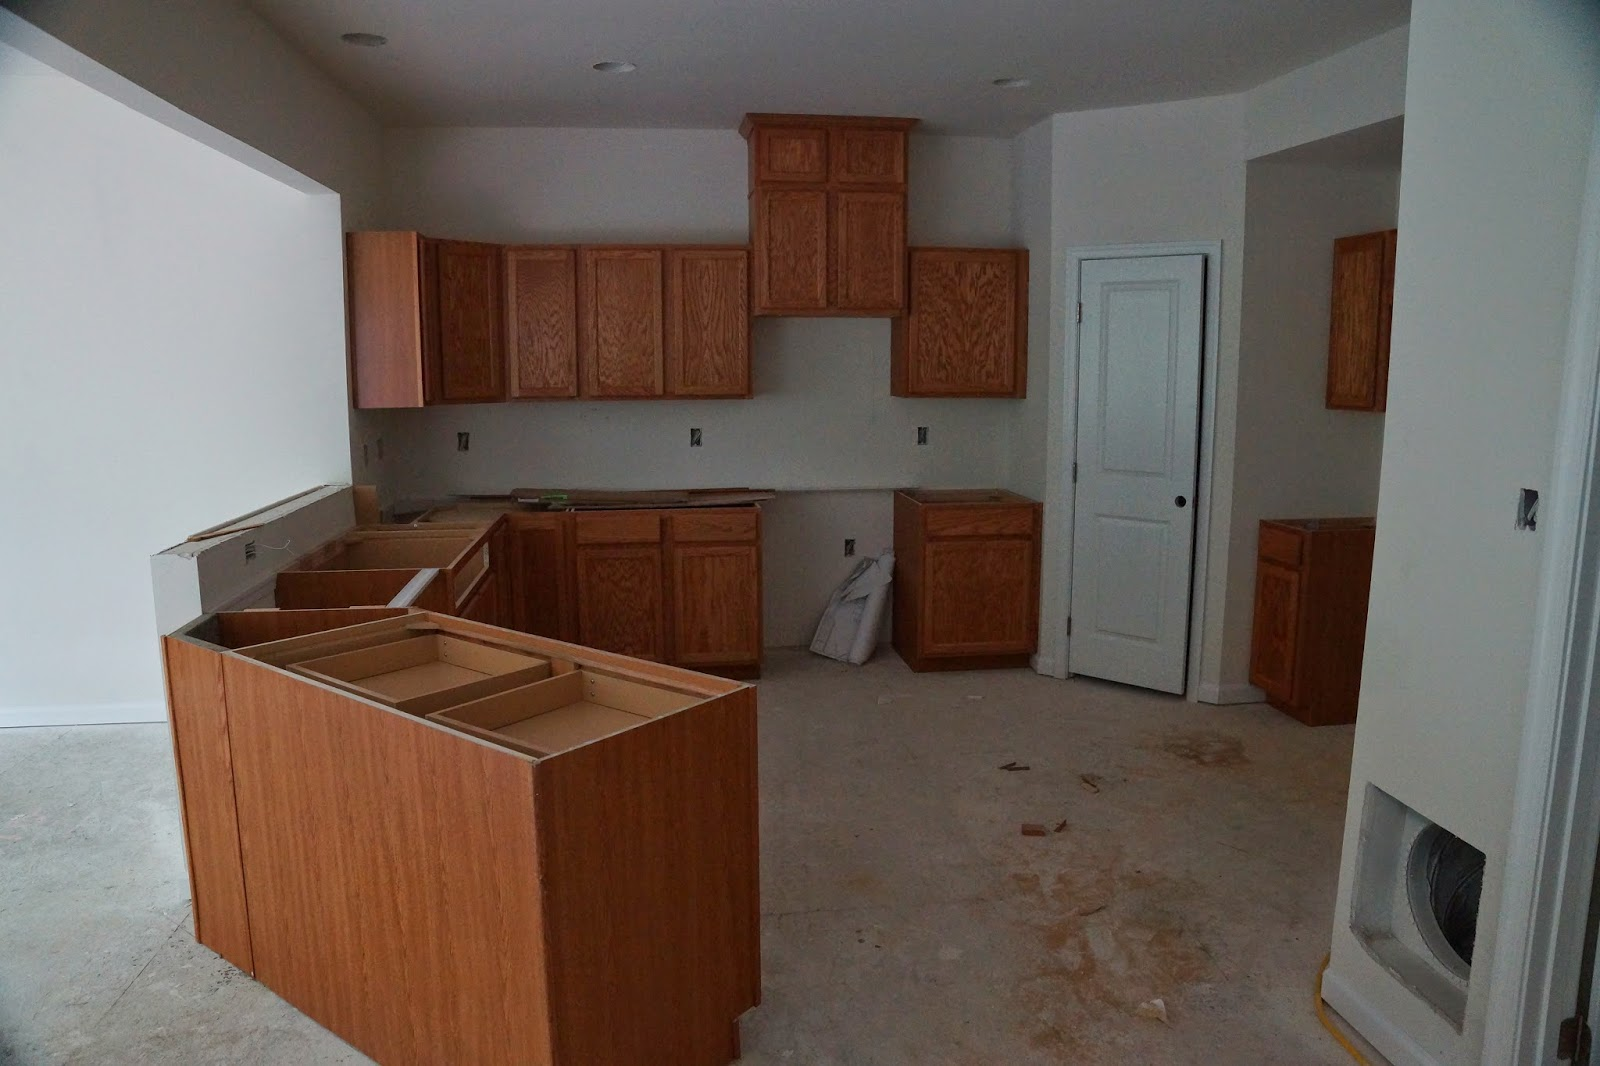 Picture of the kitchen cabinets before the counter is installed as viewed from the family room